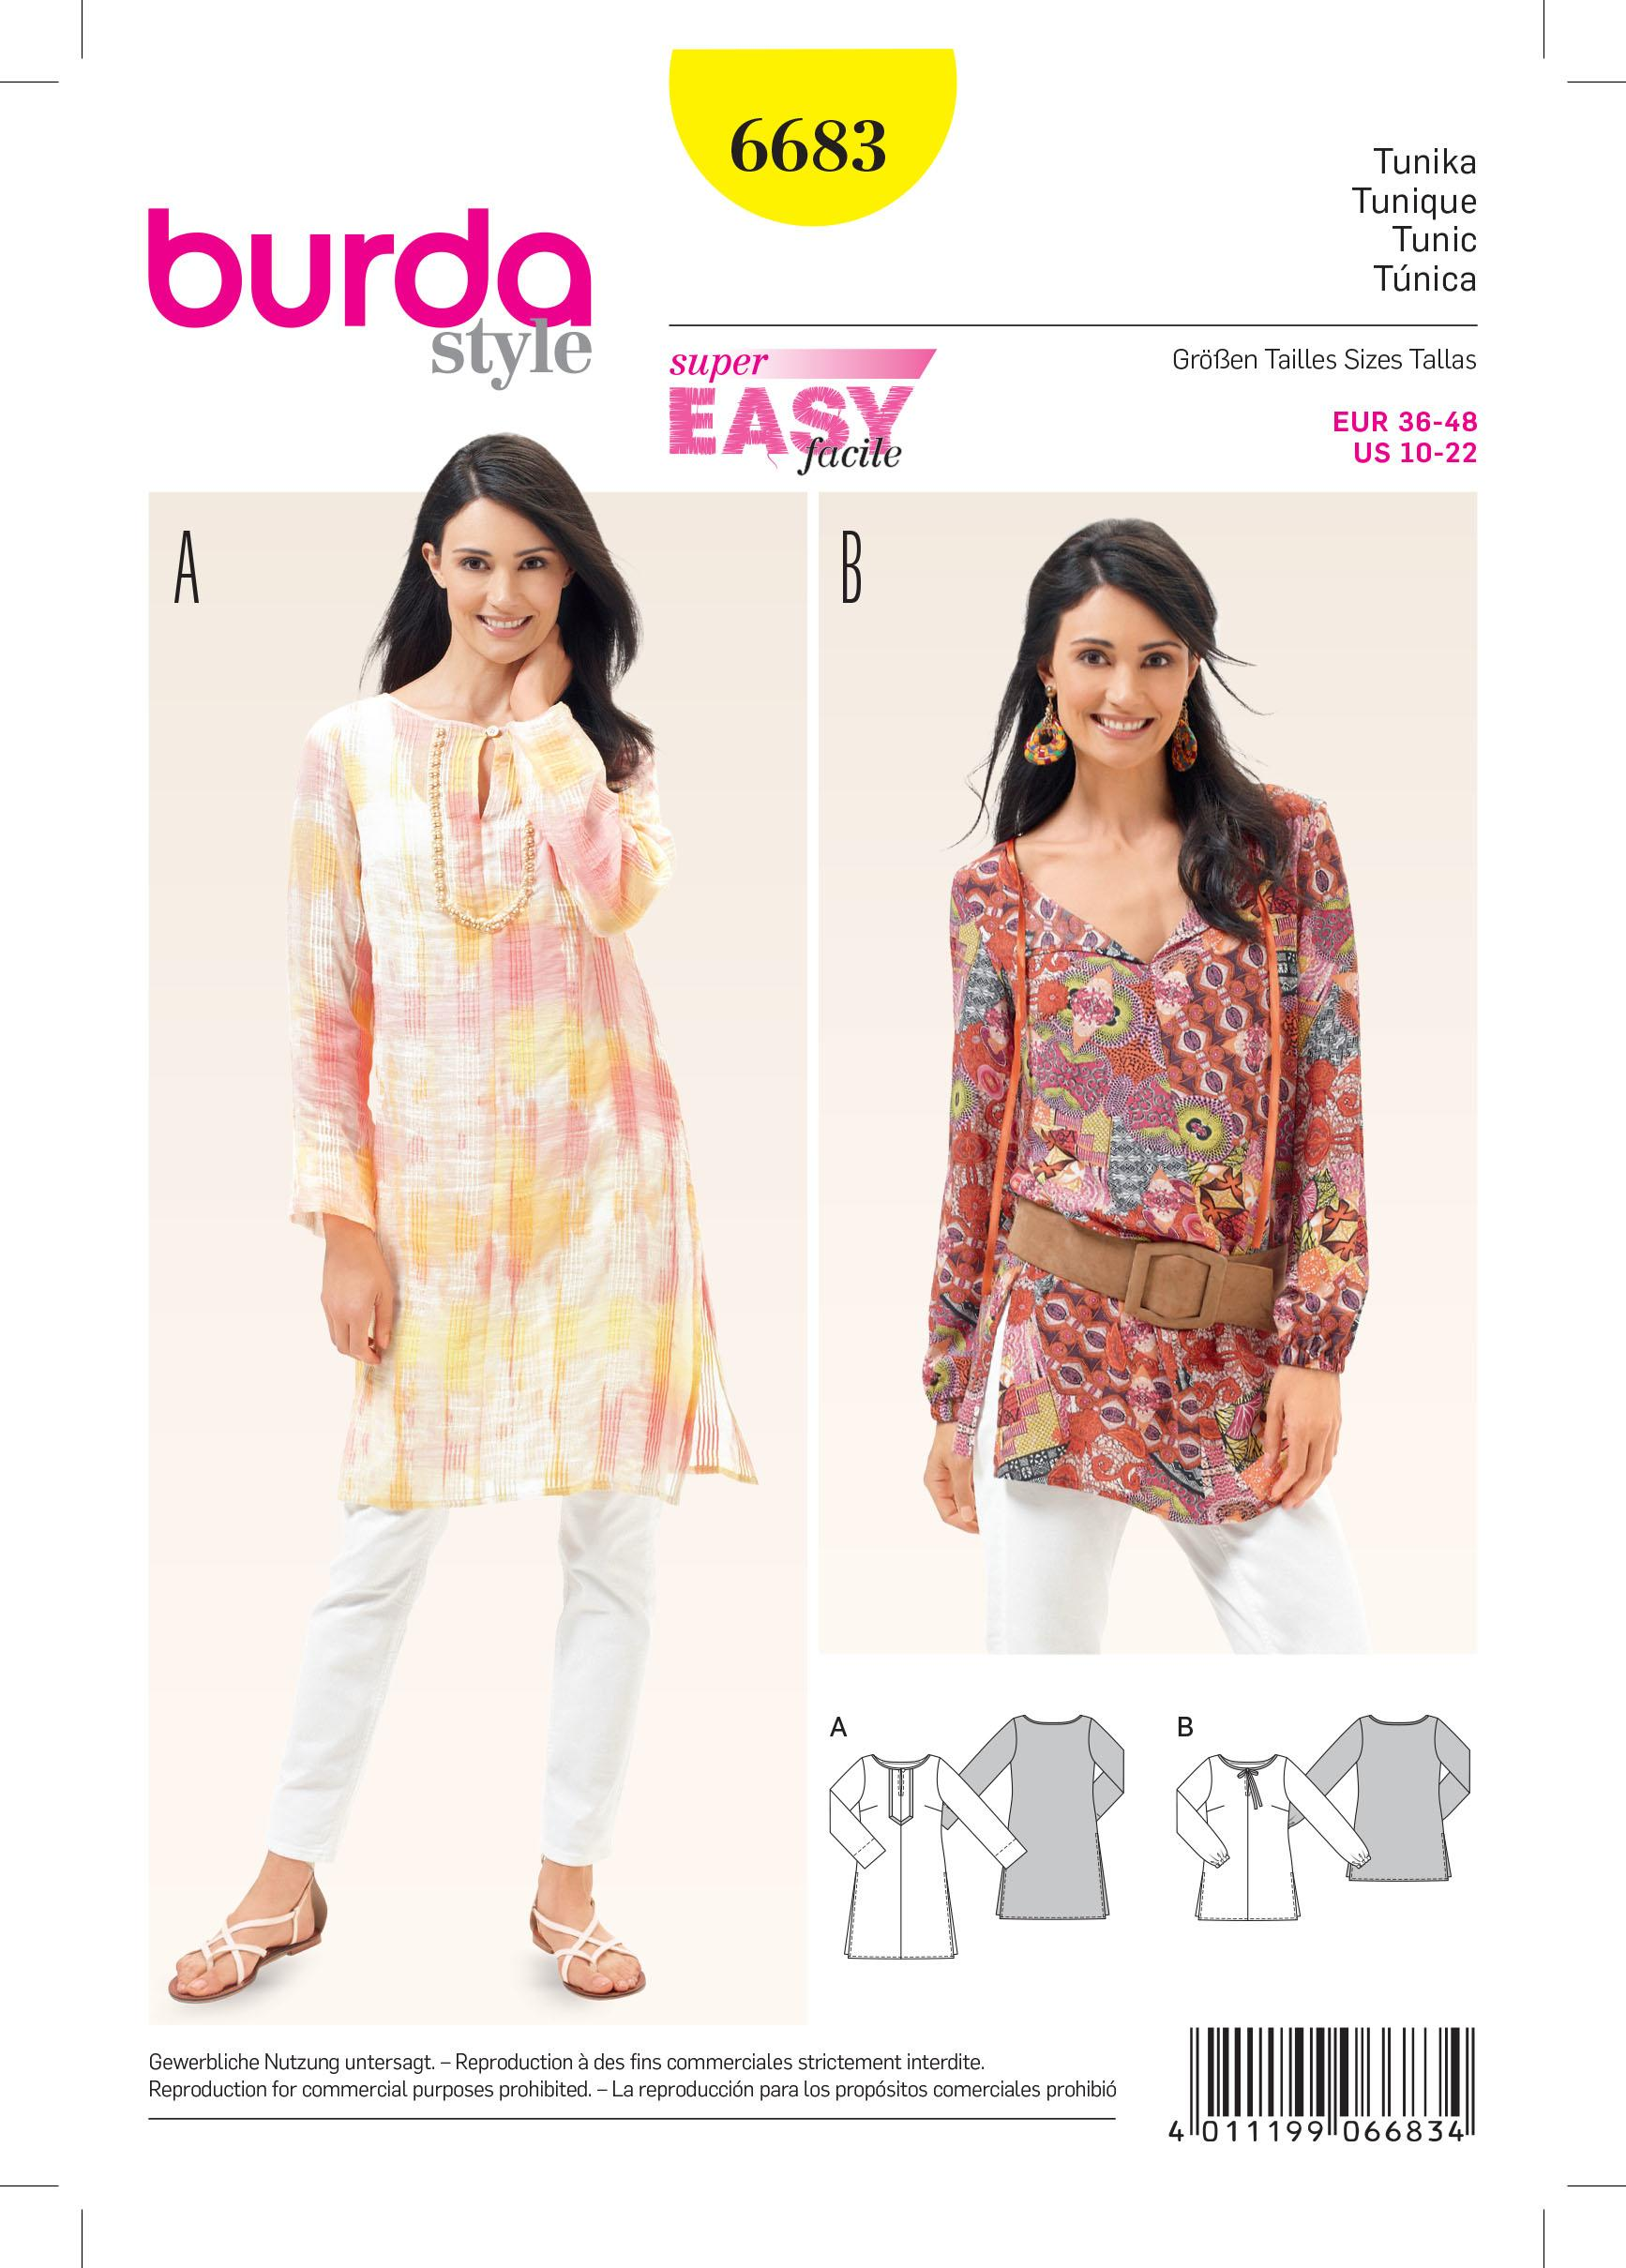 Burda B6683 Women's Tunic Sewing Pattern